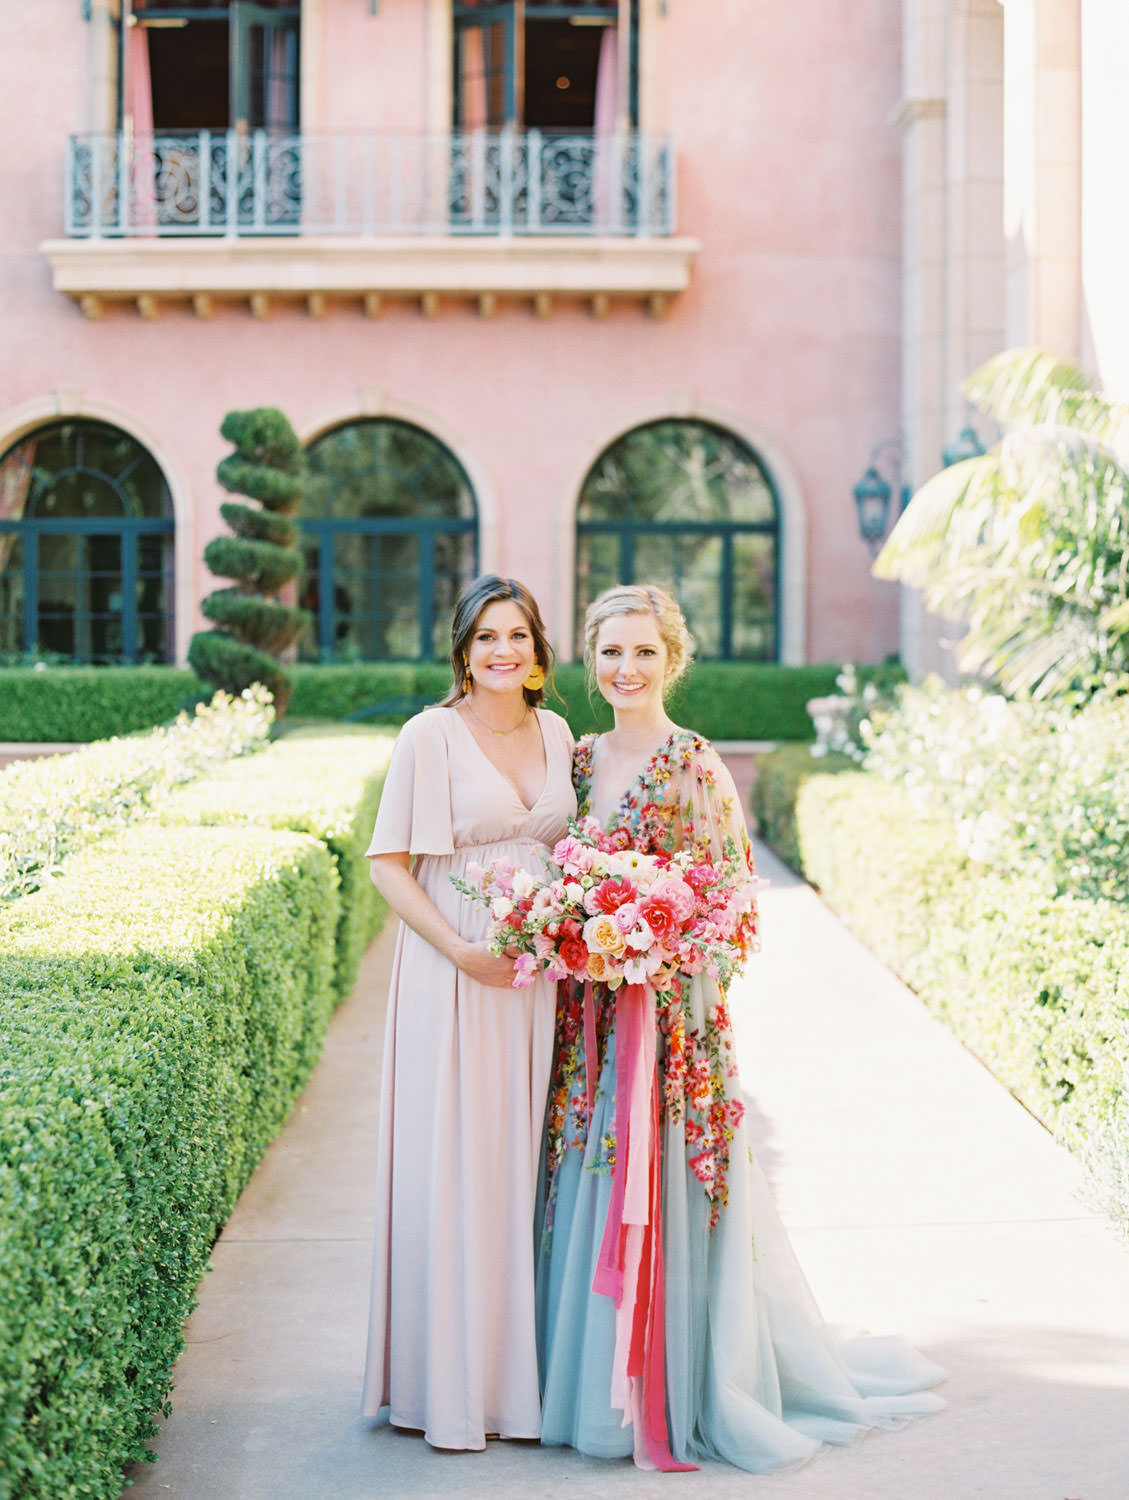 Bridesmaid in blush dress with Bride wearing a Marchesa blue and pink floral long sleeve couture gown with floral appliques. Large bridal bouquet of mostly pink tones roses, peonies, ranunculus, and sweet peas with long bright pink and blush and mauve silk ribbons. Fairmont Grand del Mar wedding published on Martha Stewart Weddings